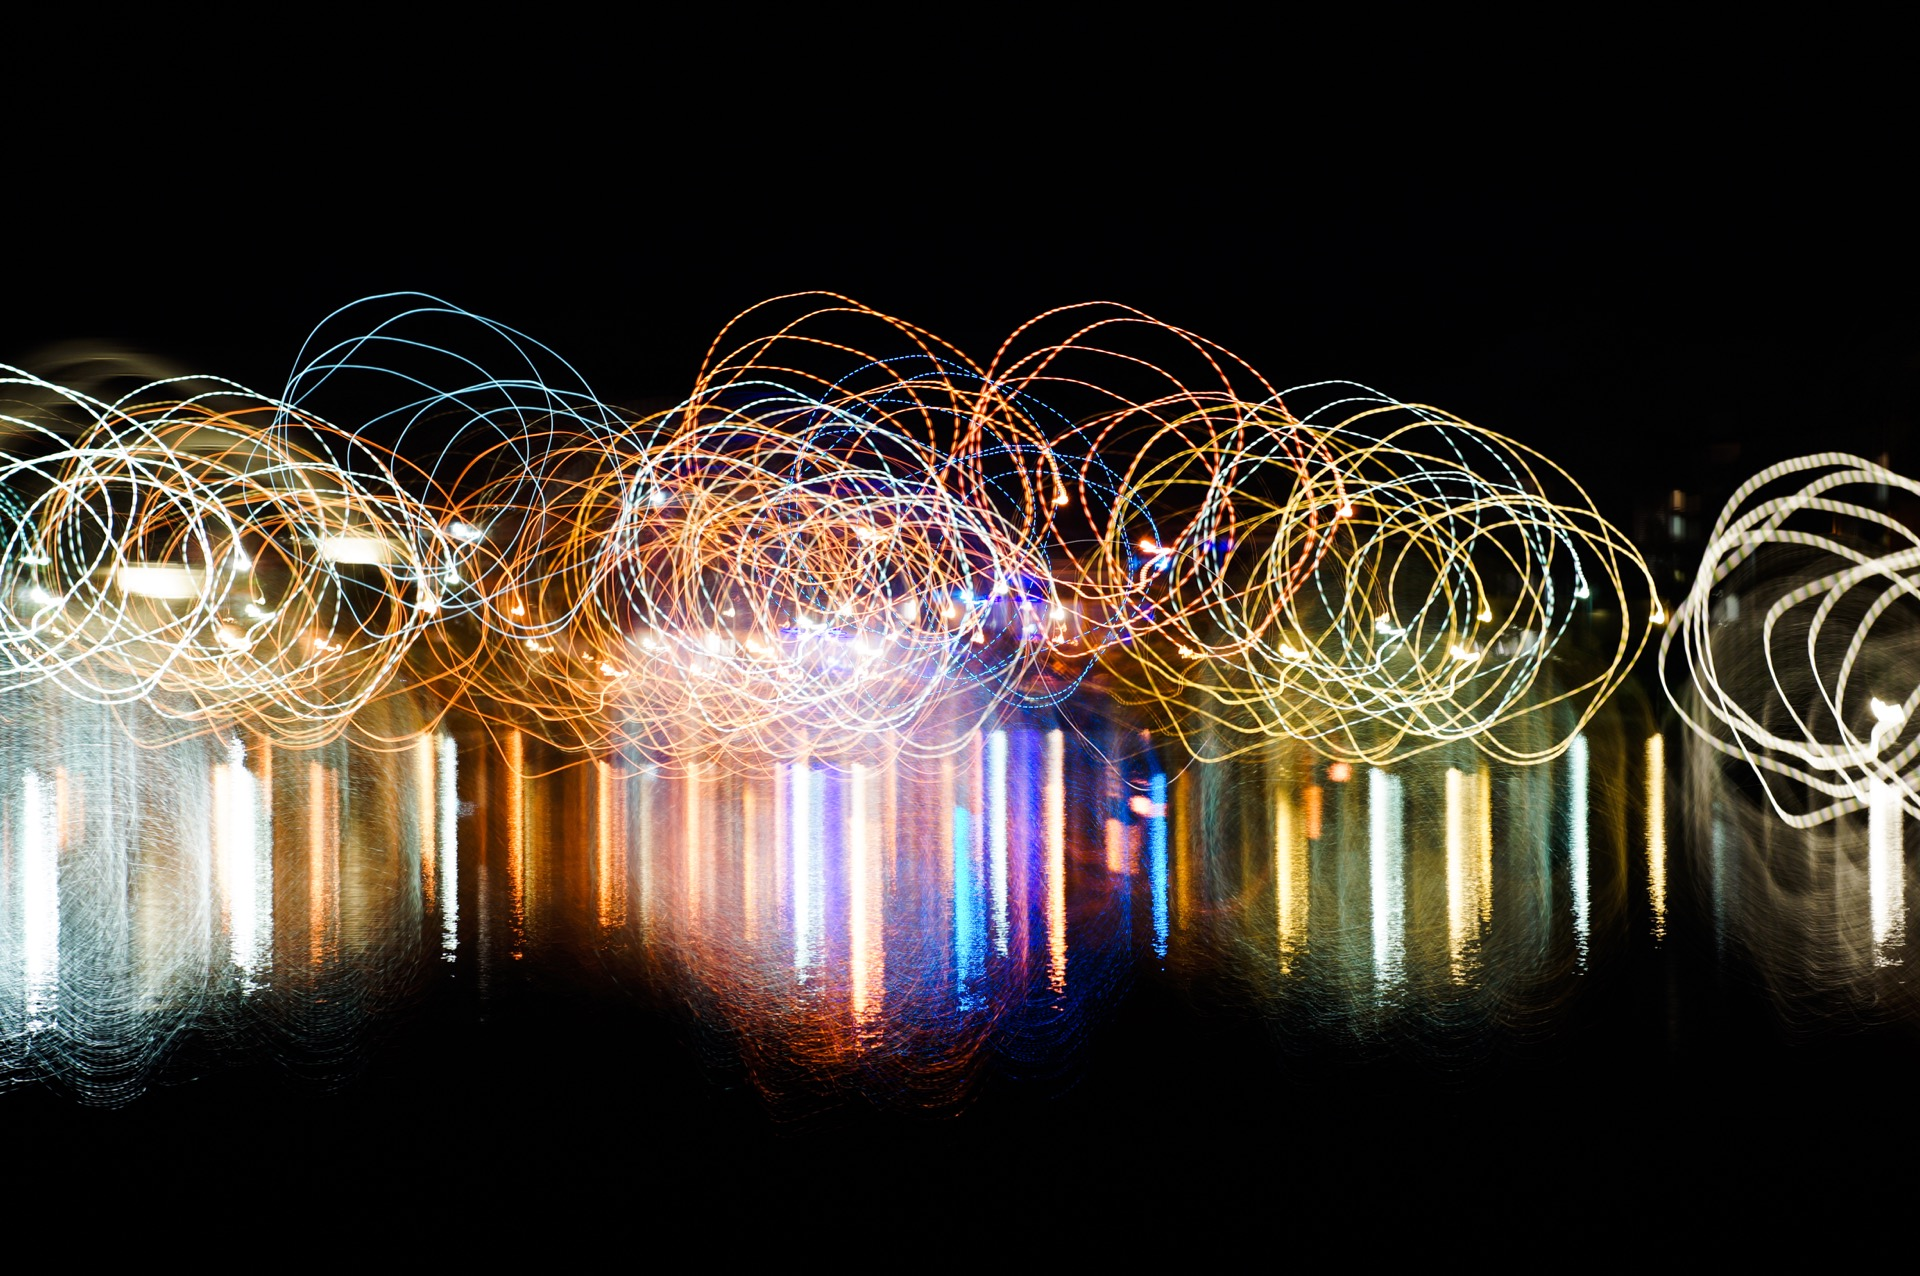 An abstract picture showing small spirals using light painting technique with vivid mixed rainbow colors on a black background